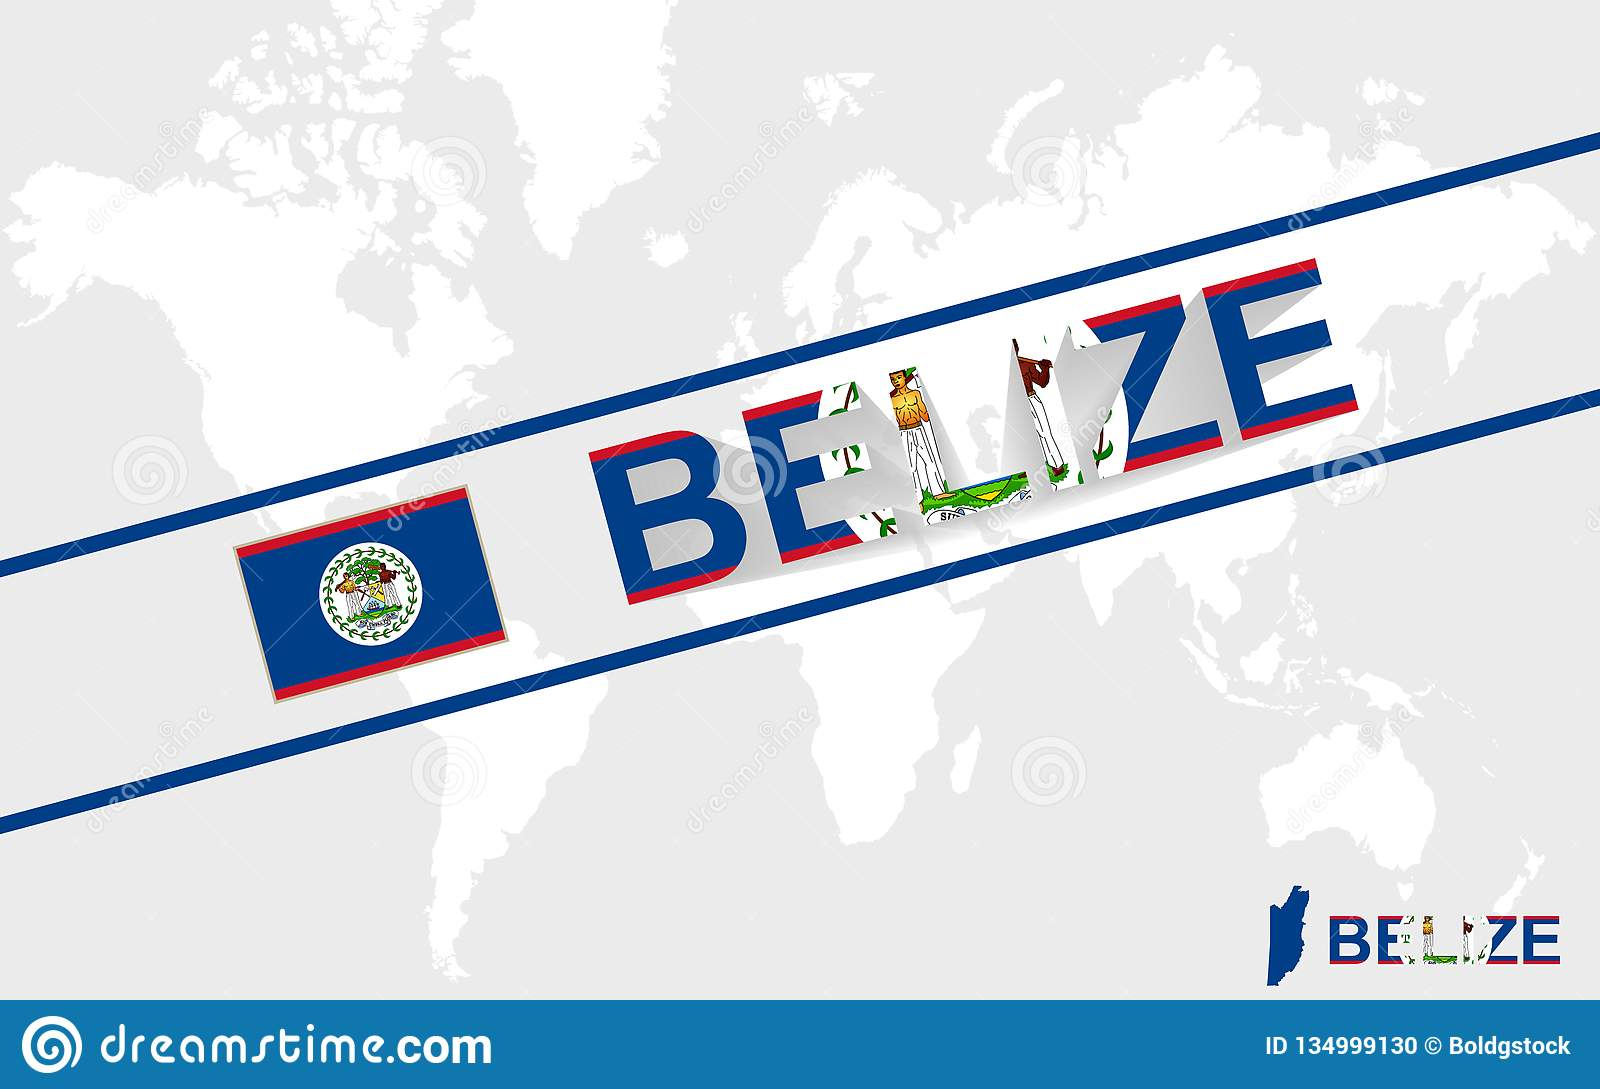 Belize Map Flag And Text Illustration Stock Vector Illustration Of